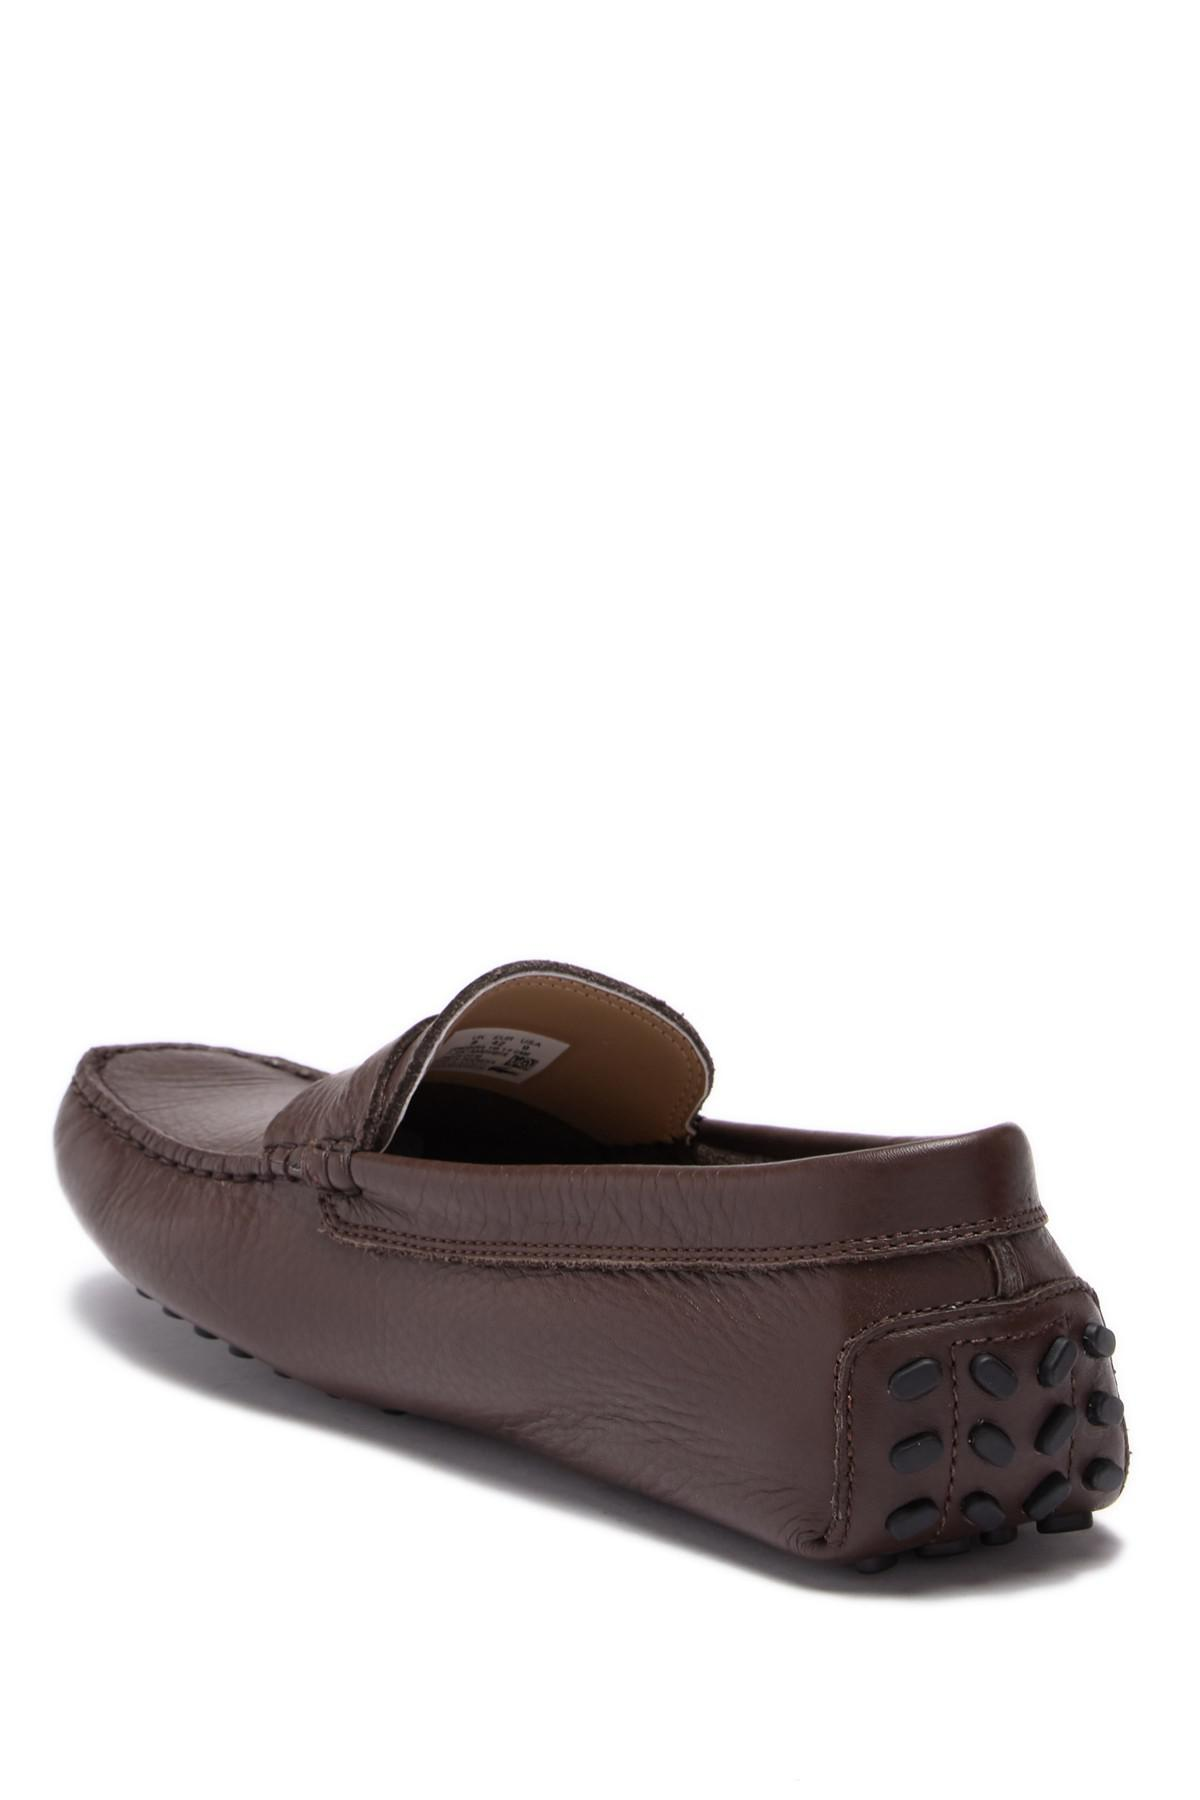 7c9d80f88eeef Lacoste - Brown Concours 118 Leather Penny Loafer for Men - Lyst. View  fullscreen